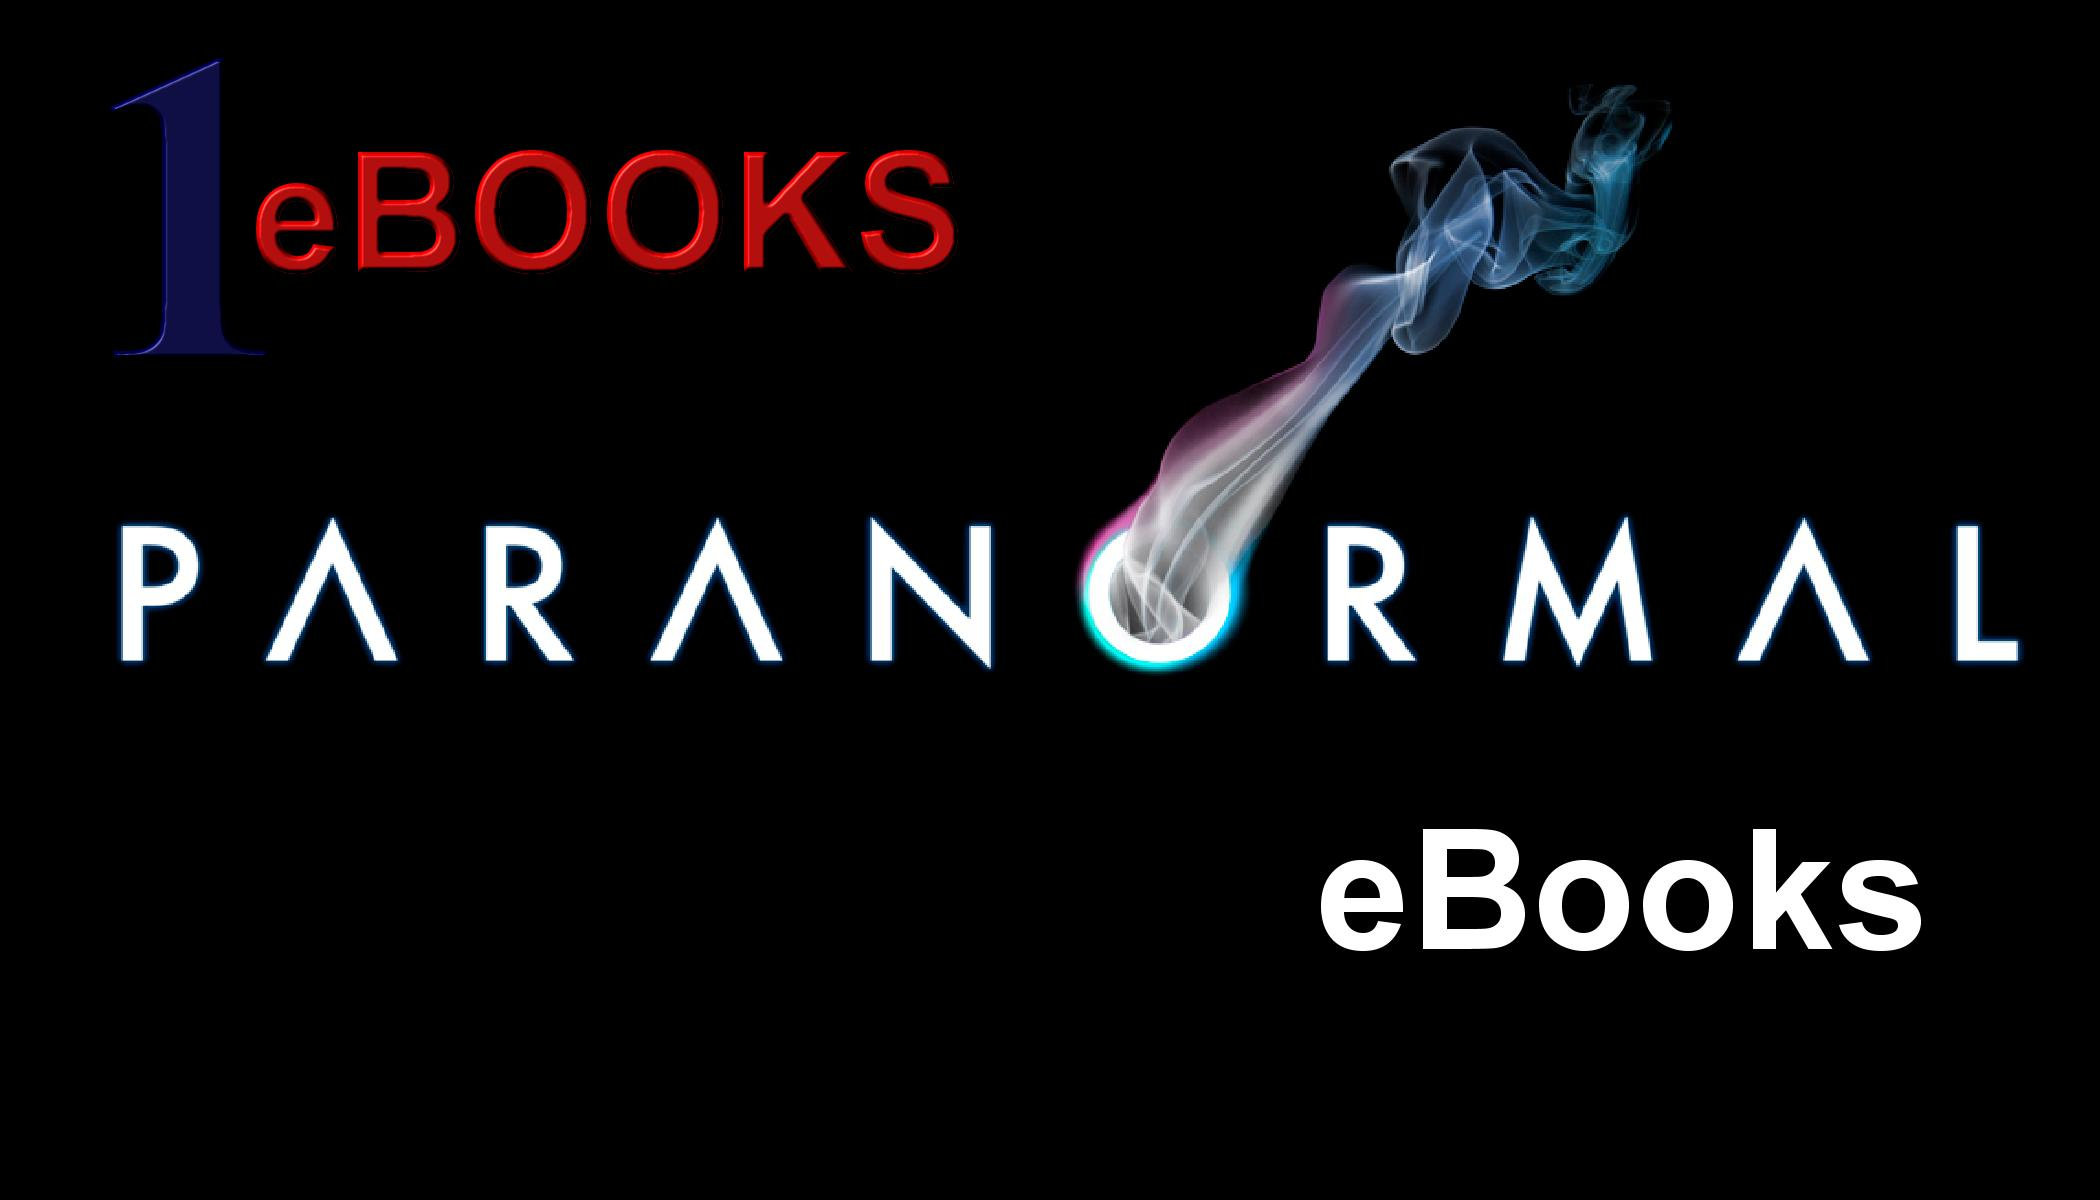 Paranormal eBooks